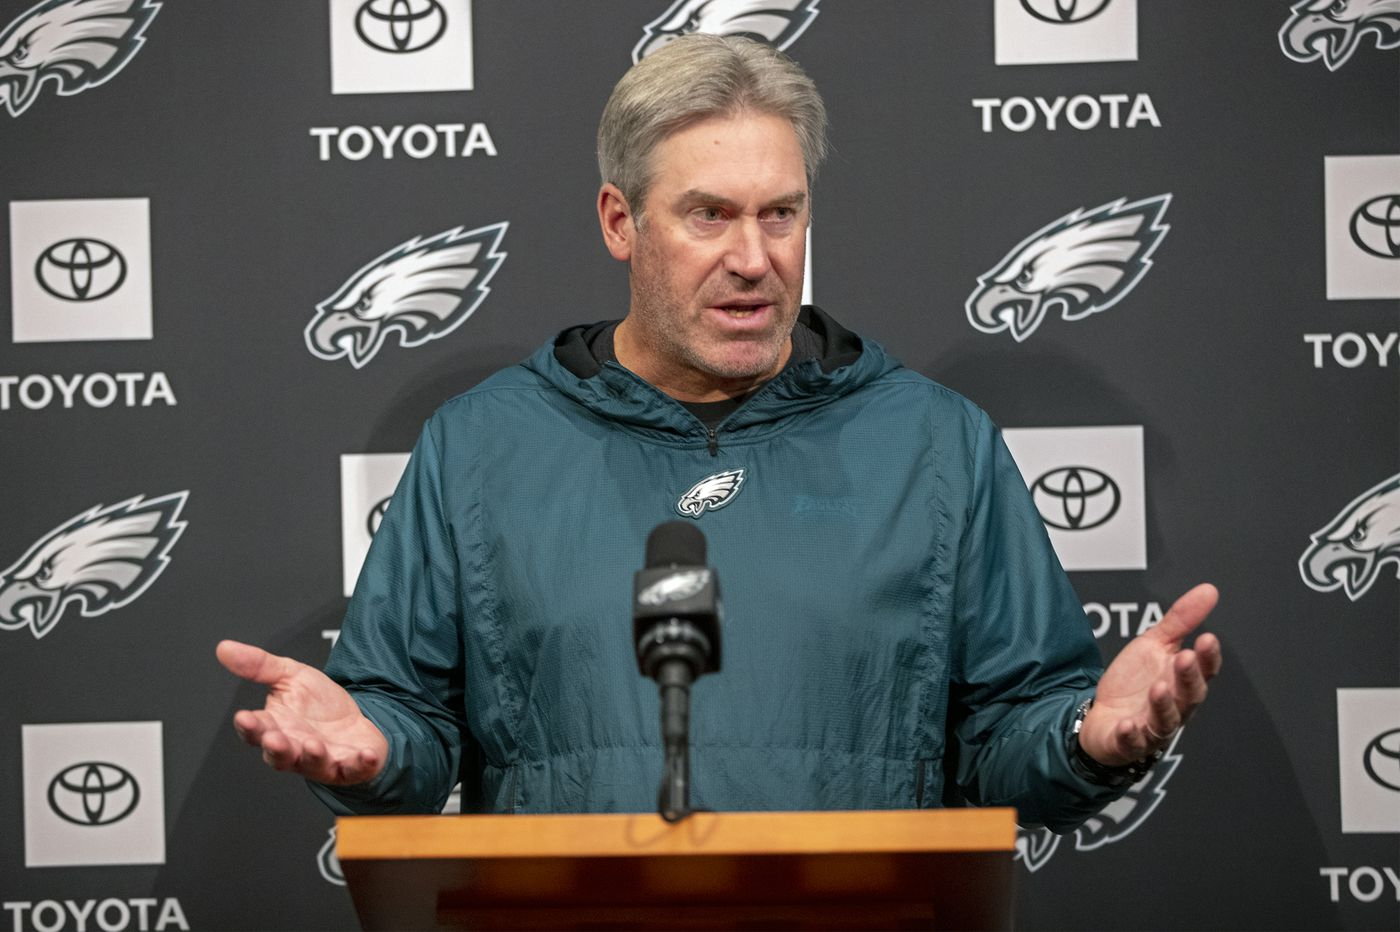 Suddenly, Eagles coach Doug Pederson's player-friendly style seems slightly less than Super